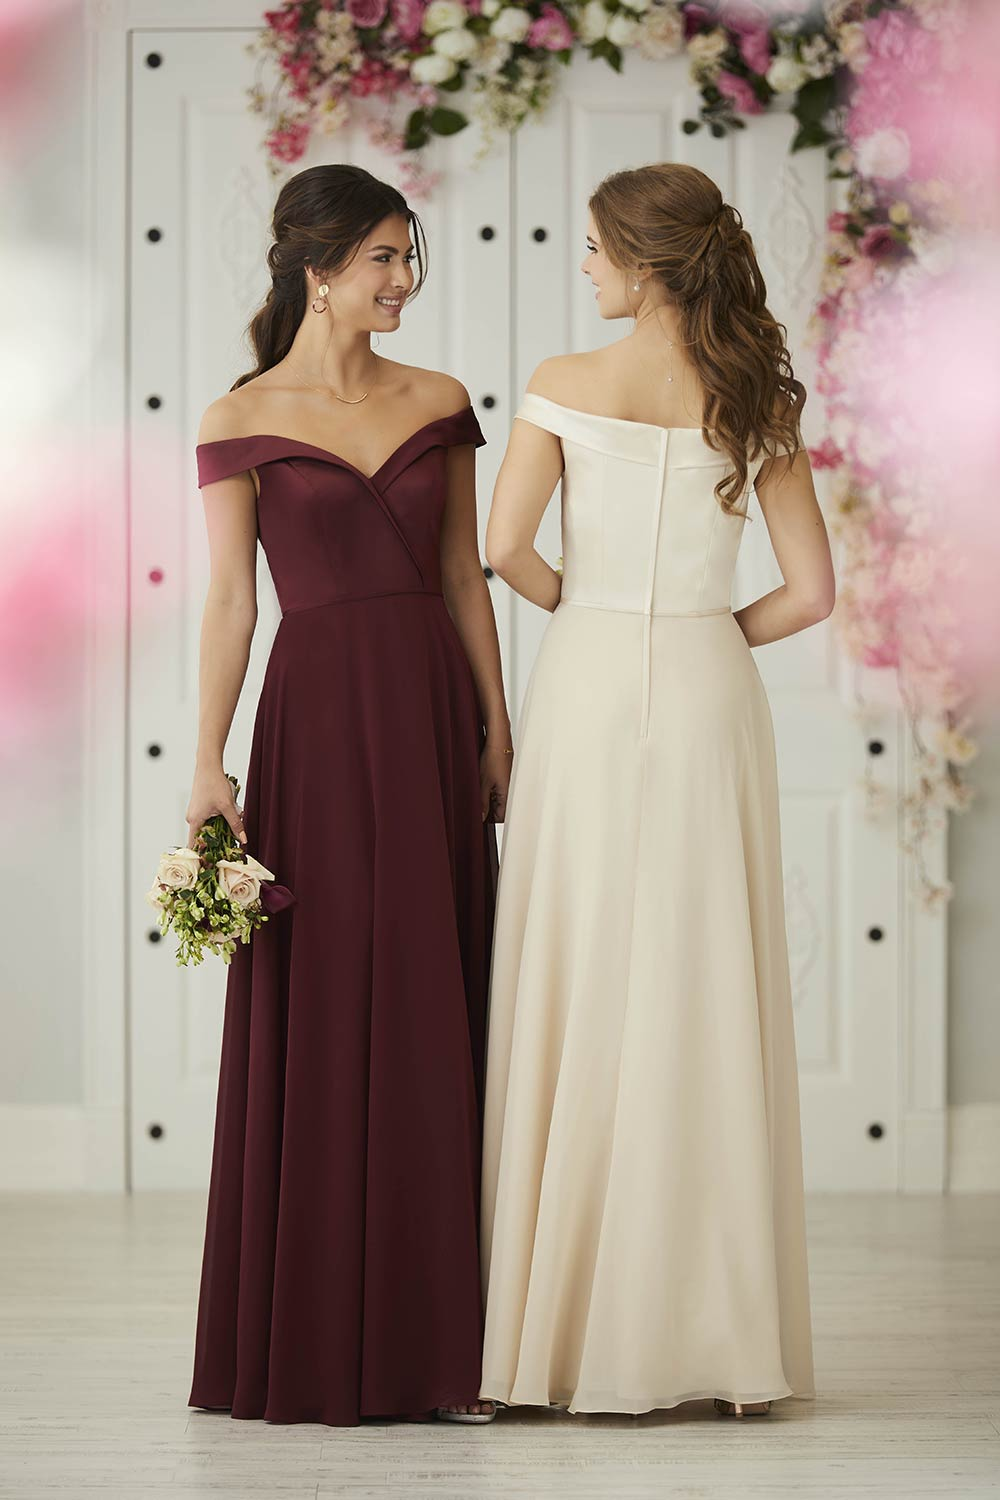 bridesmaid-dresses-jacquelin-bridals-canada-27309